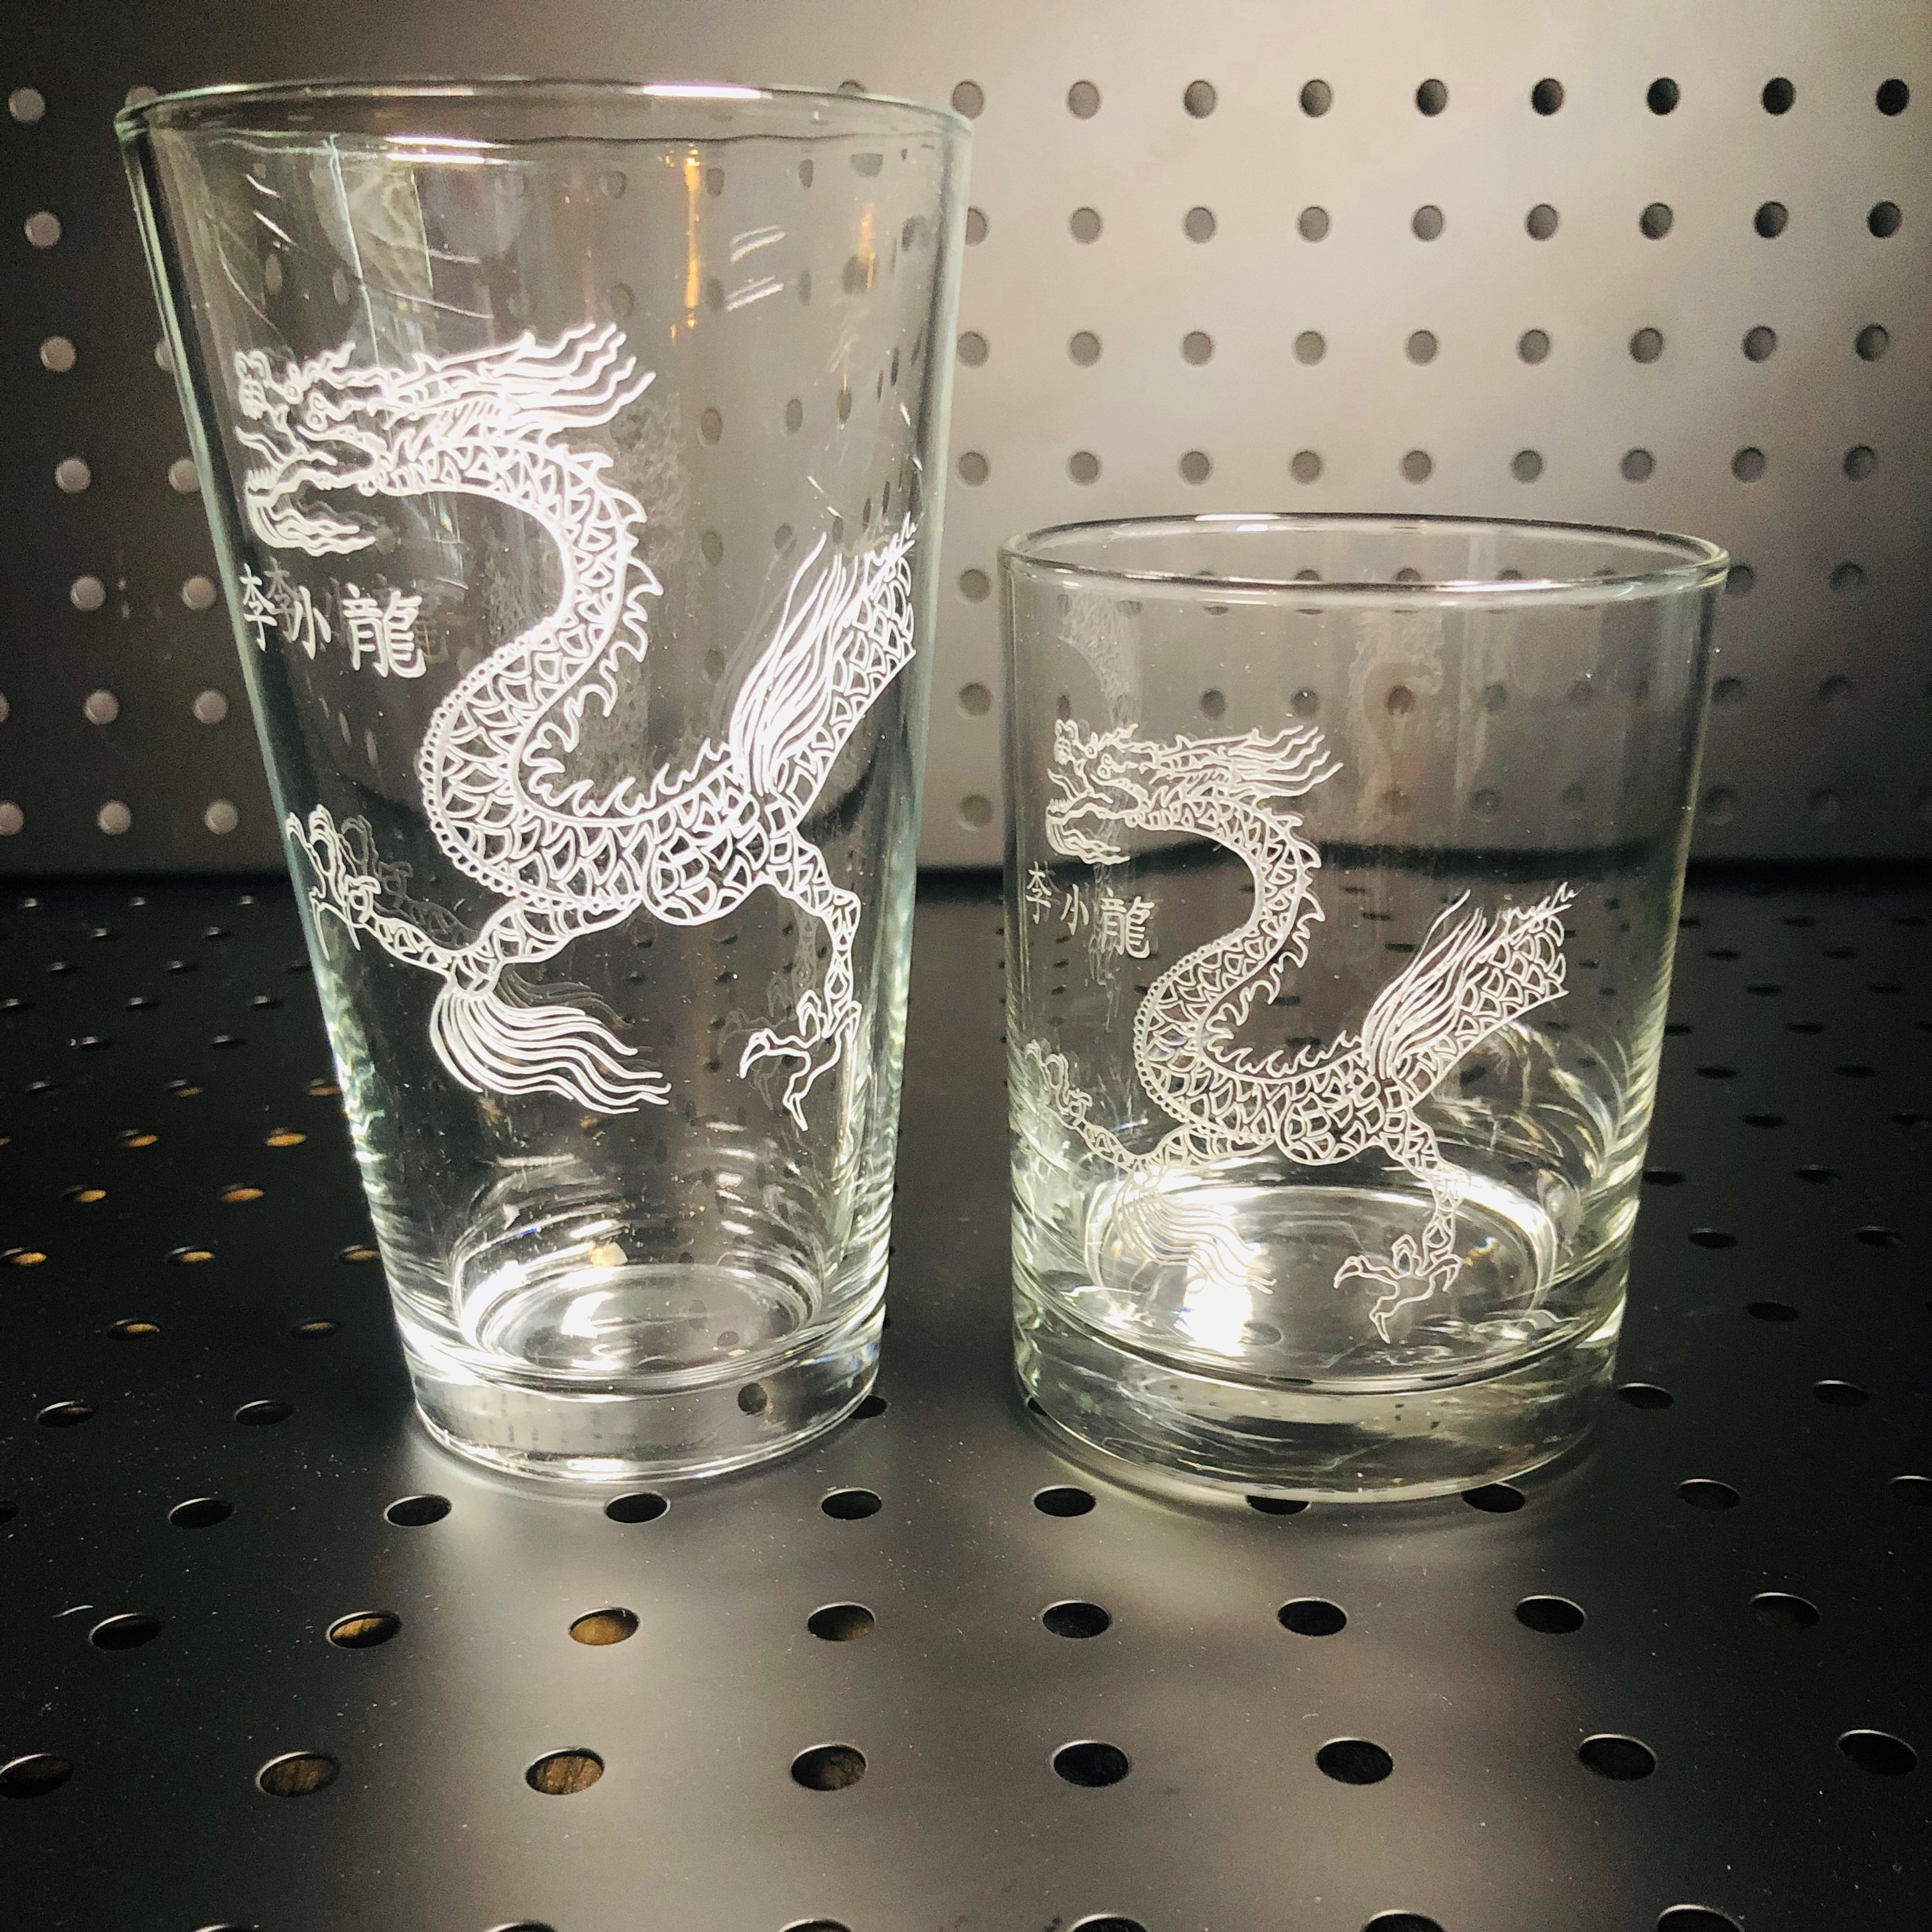 Lee Little Dragon 13.5oz. Etched Glass